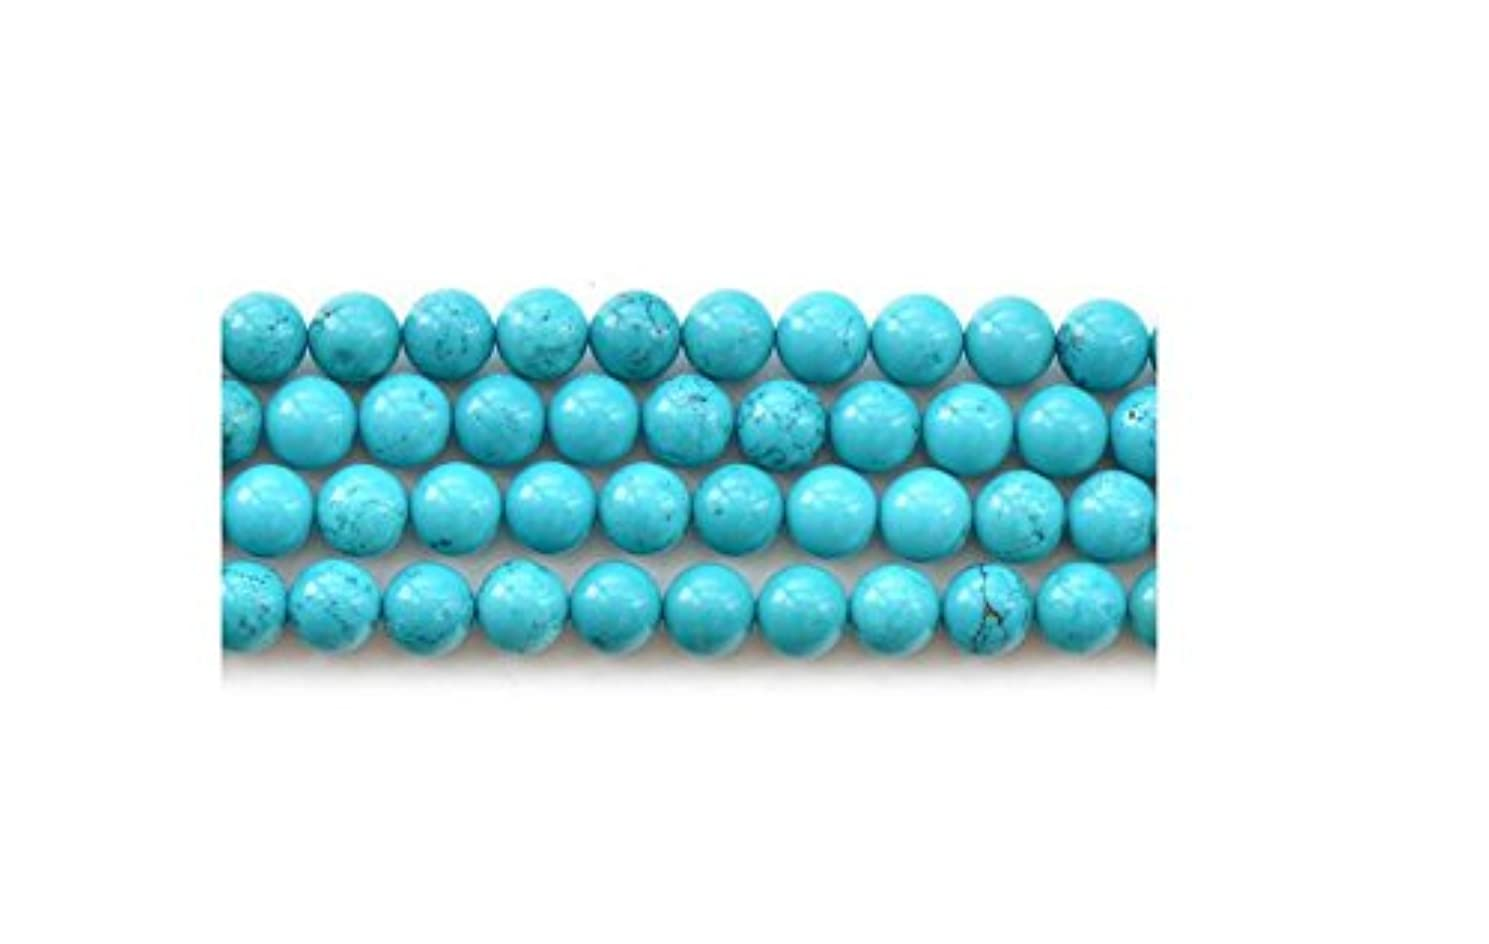 Asingeloo Howlite Turquoise Round Loose Beads Gemstone 15 Inch 10mm Crystal Energy Stone Healing Power for Jewelry Making